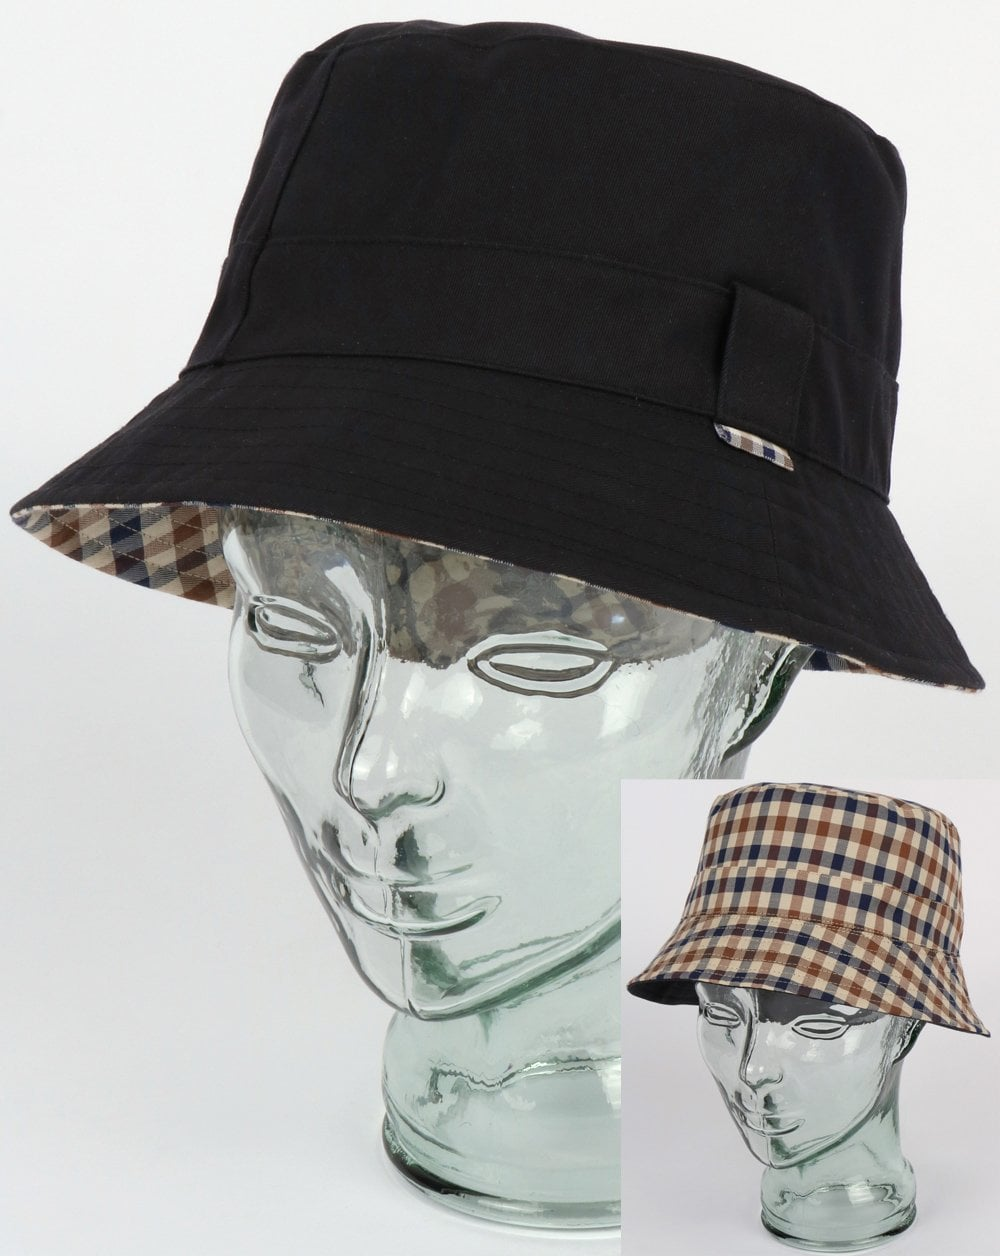 bd55e4d0a Aquascutum Reversible Bucket Hat Navy